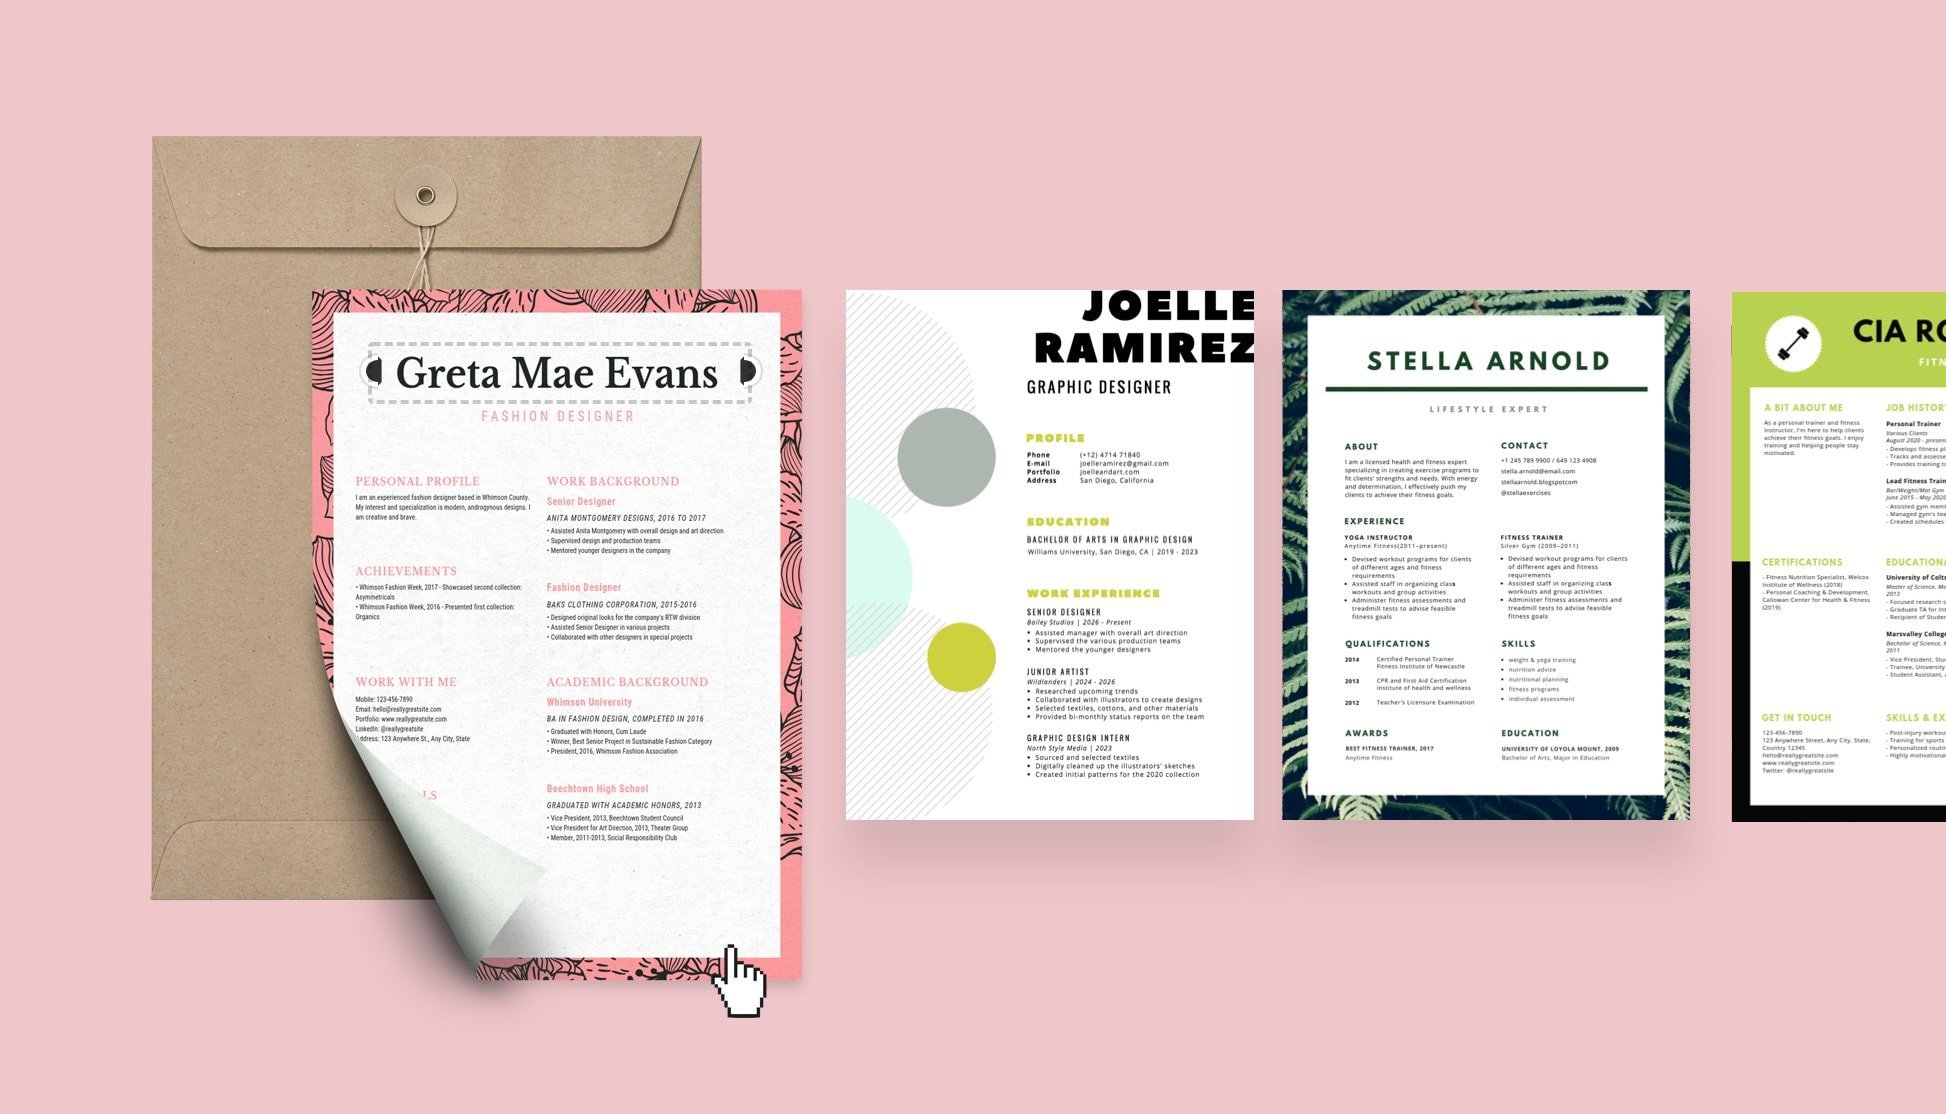 free resume builder design custom in canva make for job simple clean layout Resume Make Resume For Job